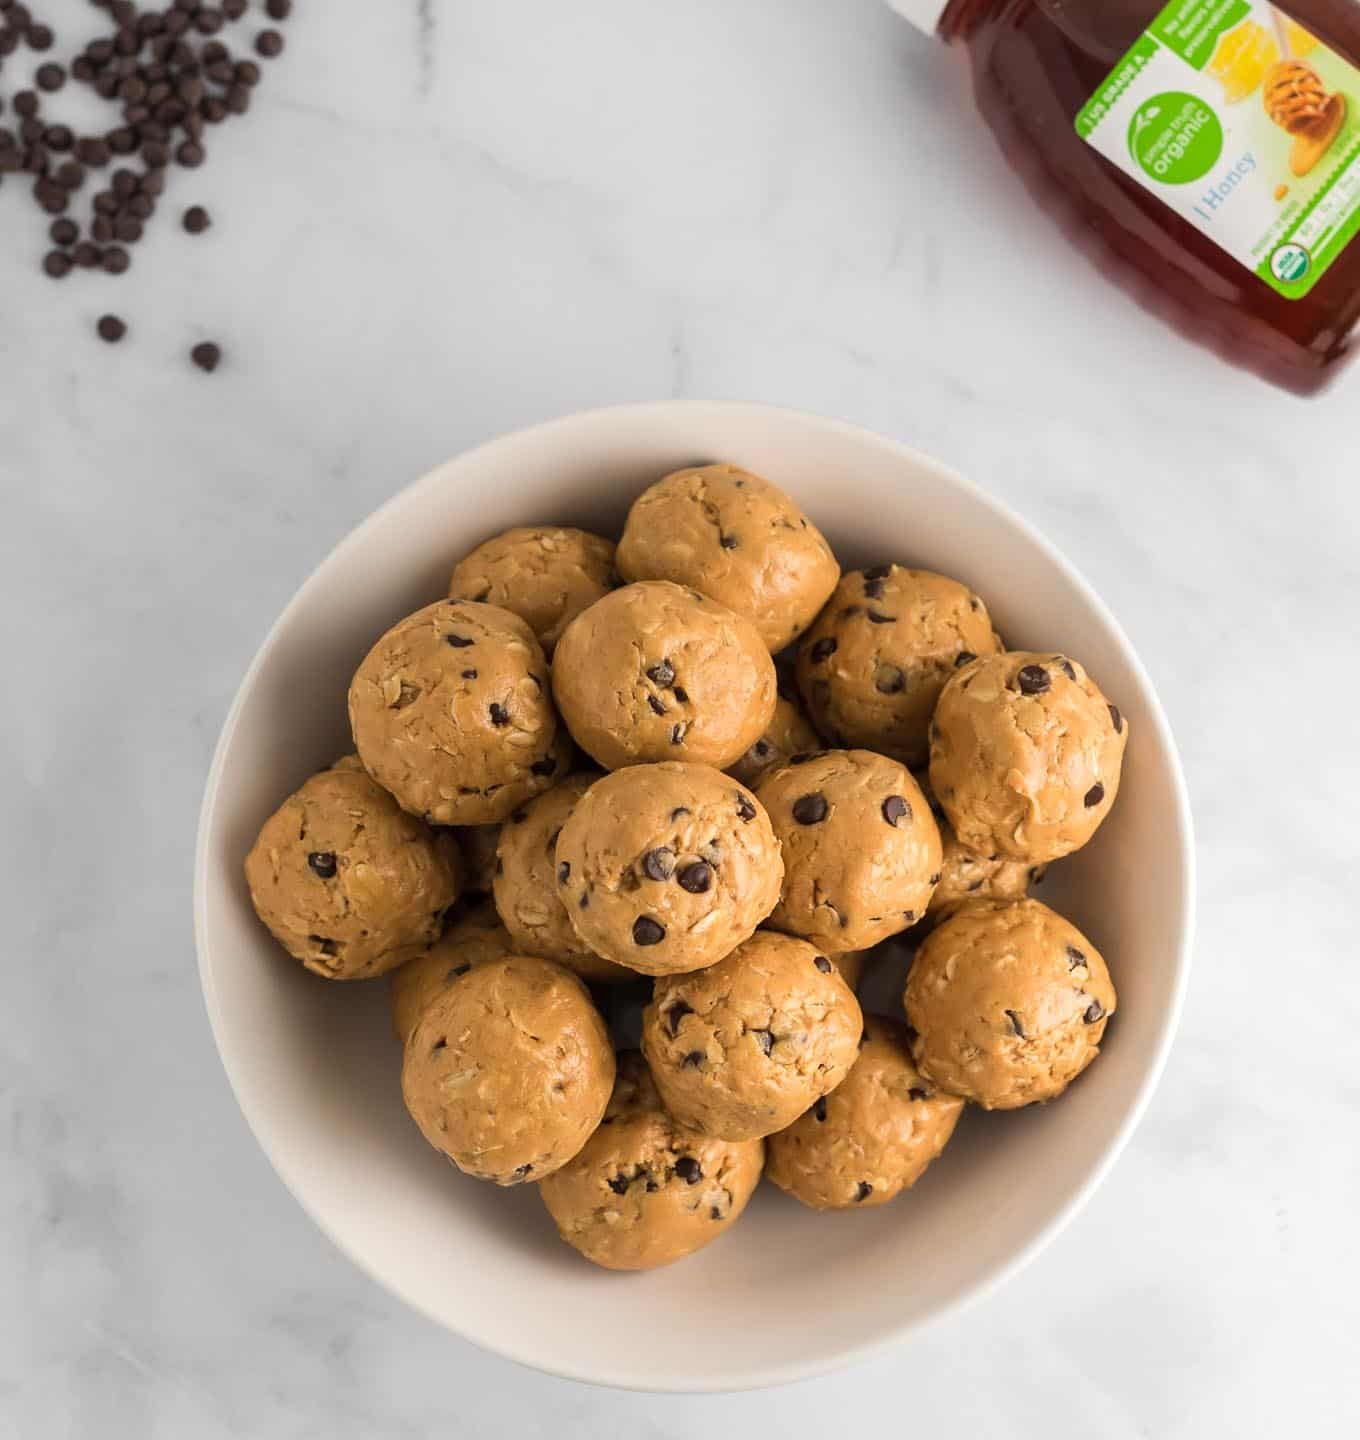 energy balls with honey and chocolate chips in the corner of the photo